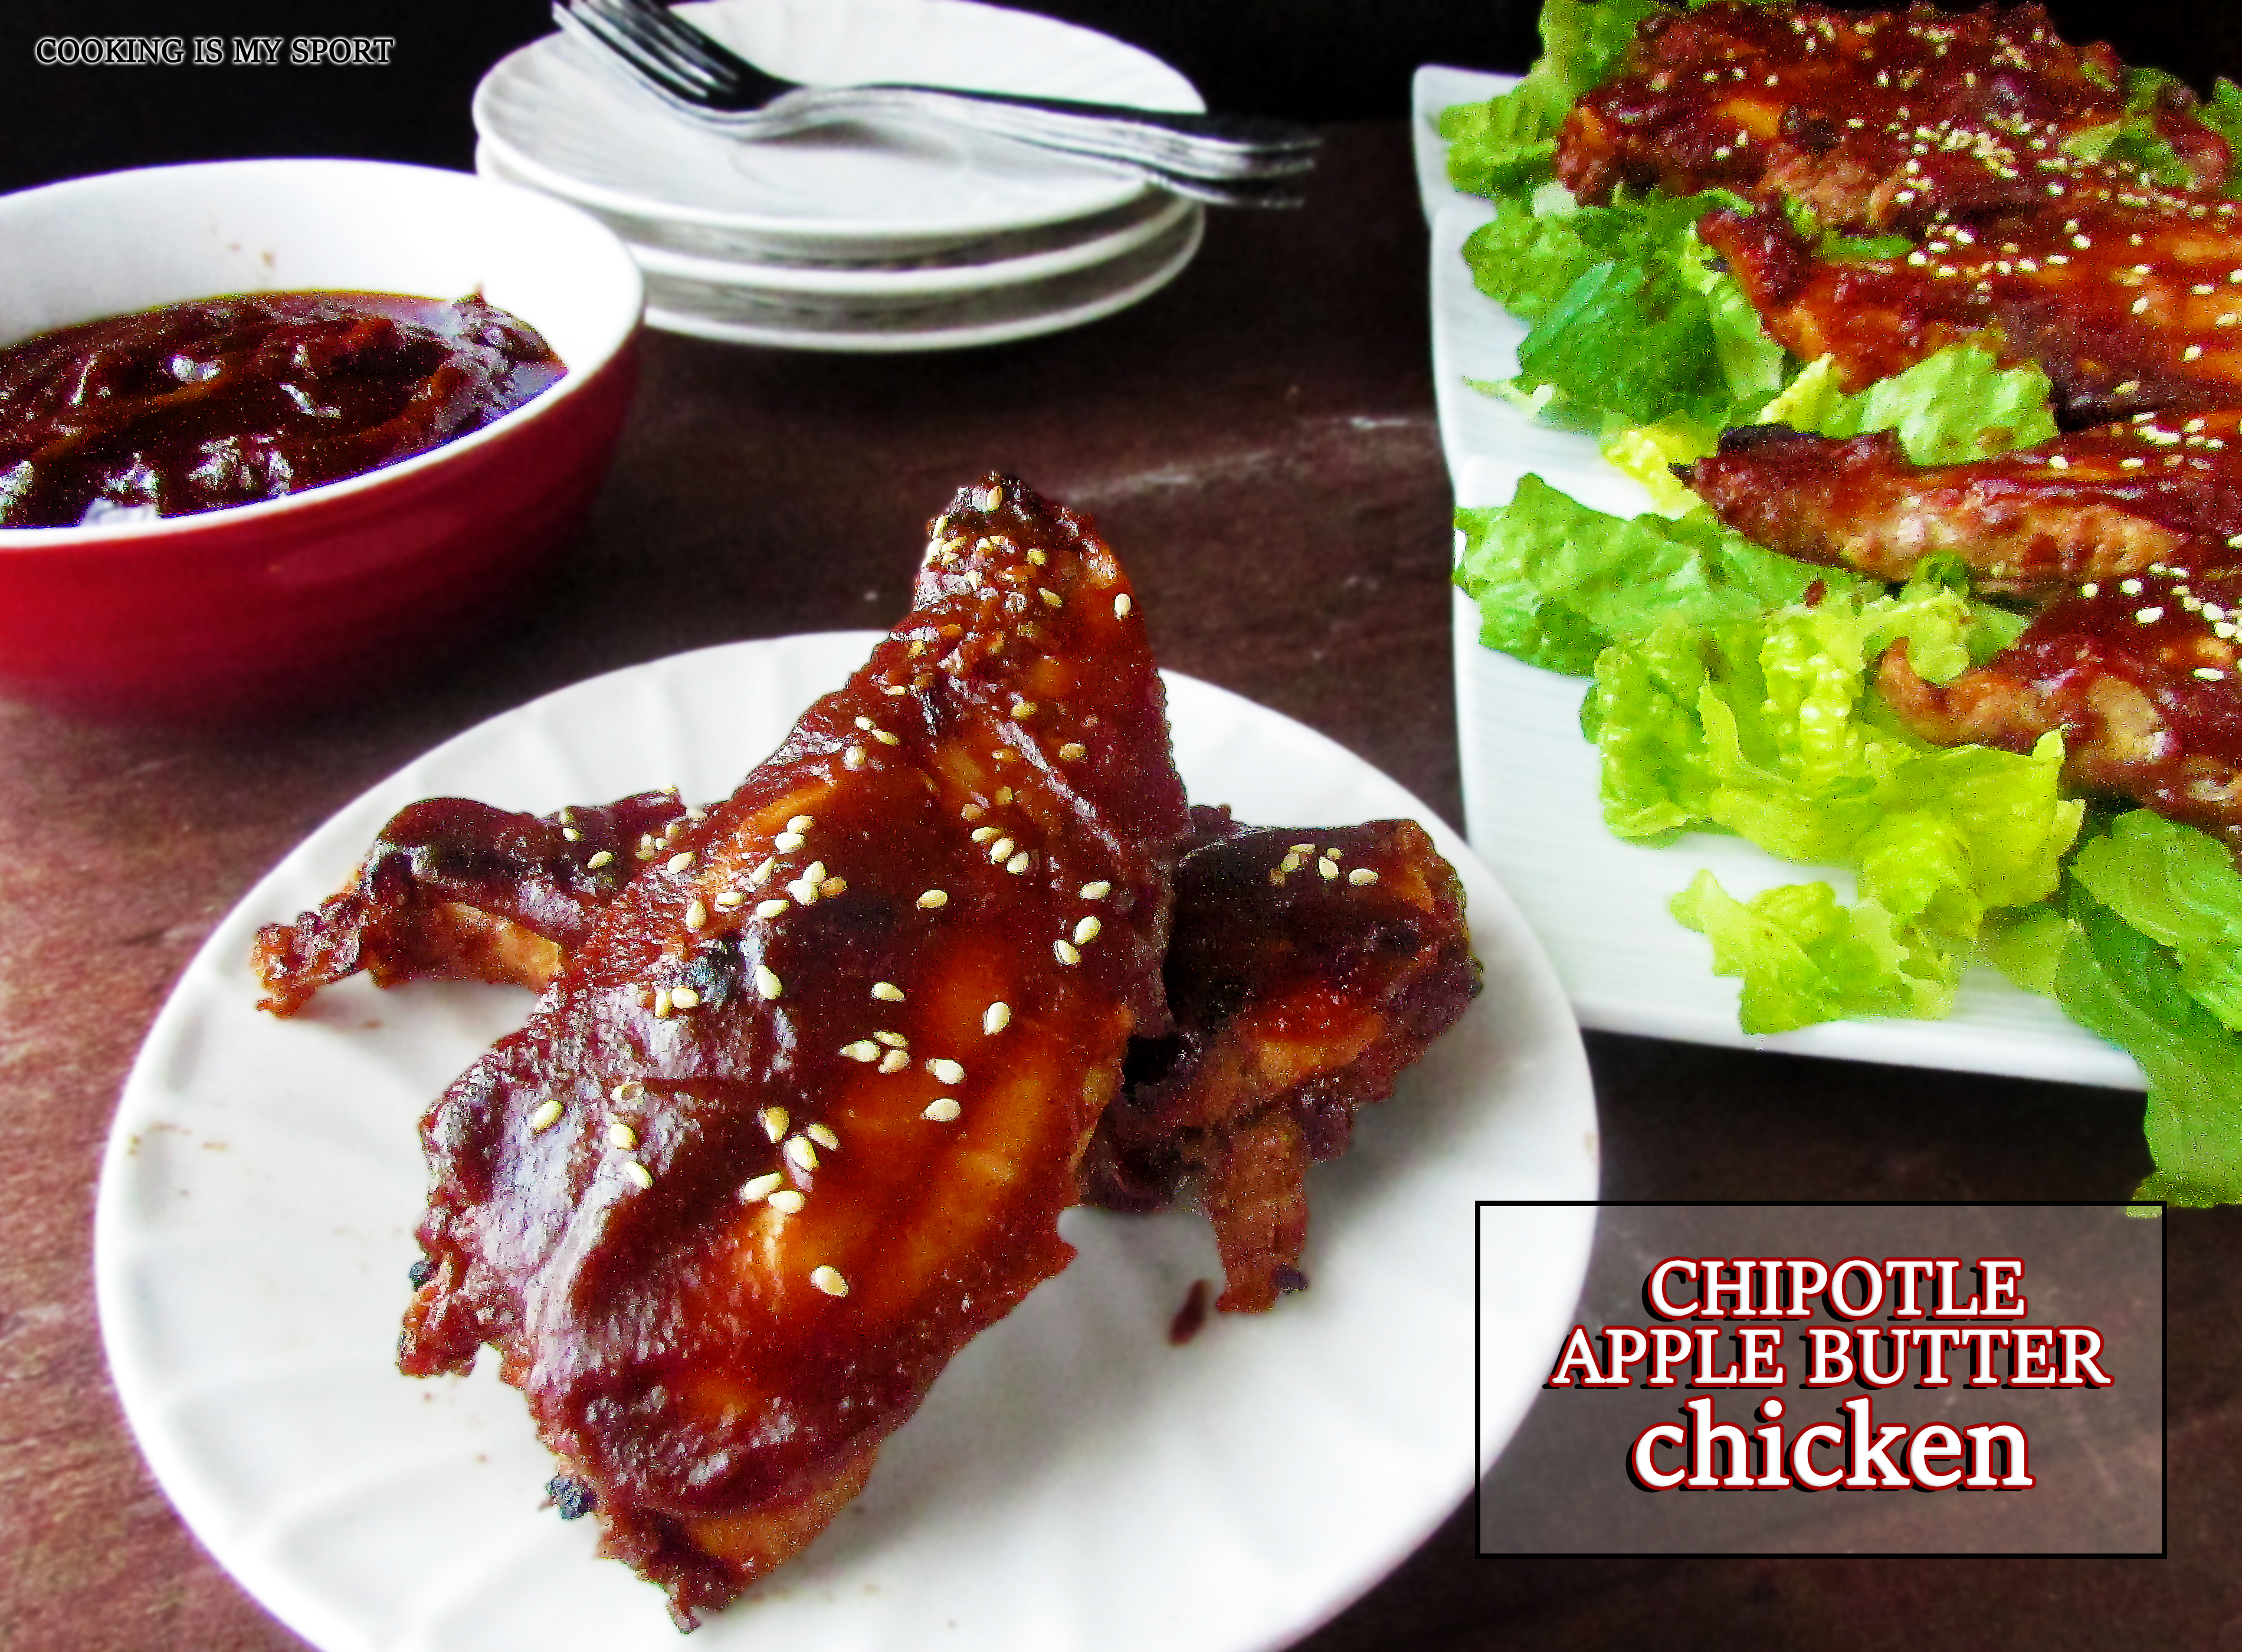 Chipotle Apple Butter Chicken | Cooking Is My Sport